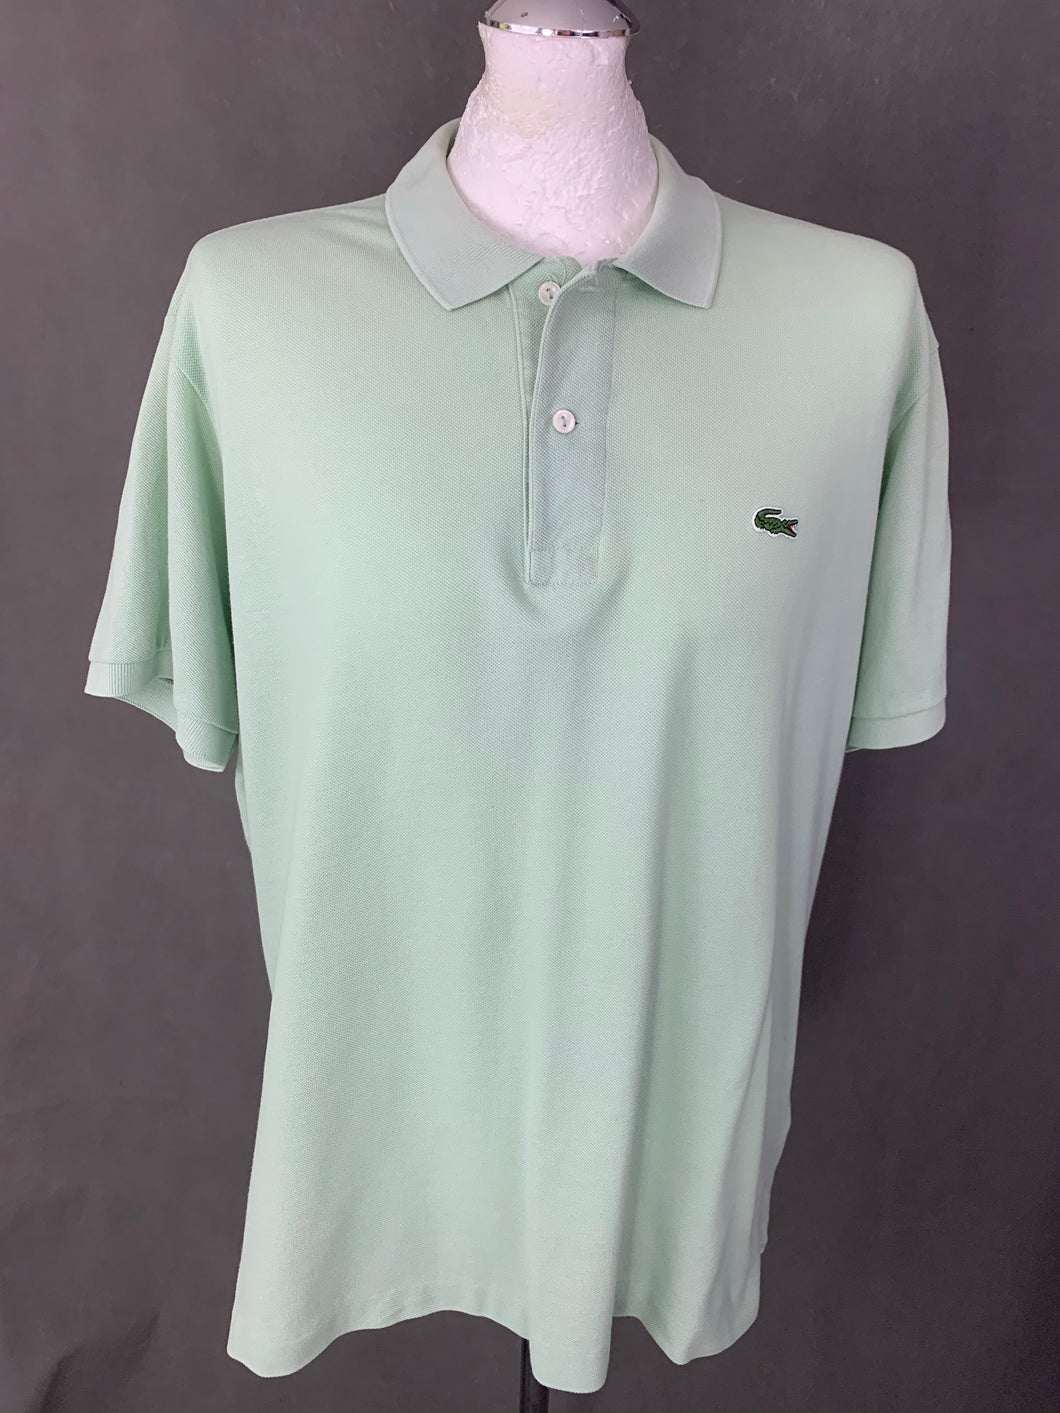 LACOSTE Mens Green POLO SHIRT - LACOSTE Size 7 - 2XL XXL